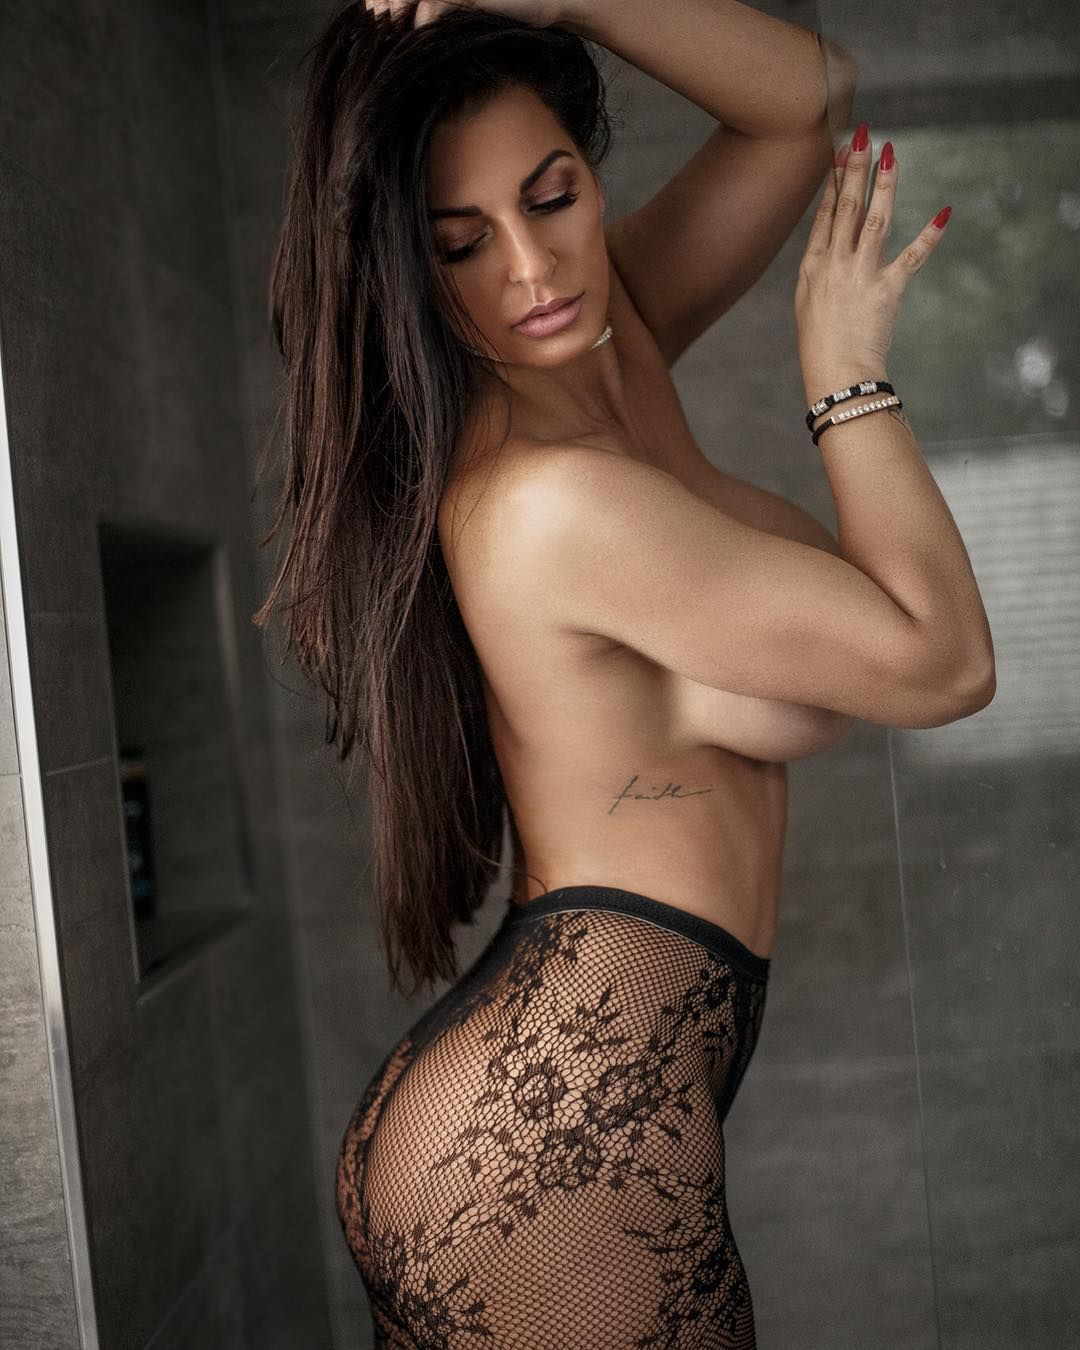 Awesome nadine kerastas pics just for you